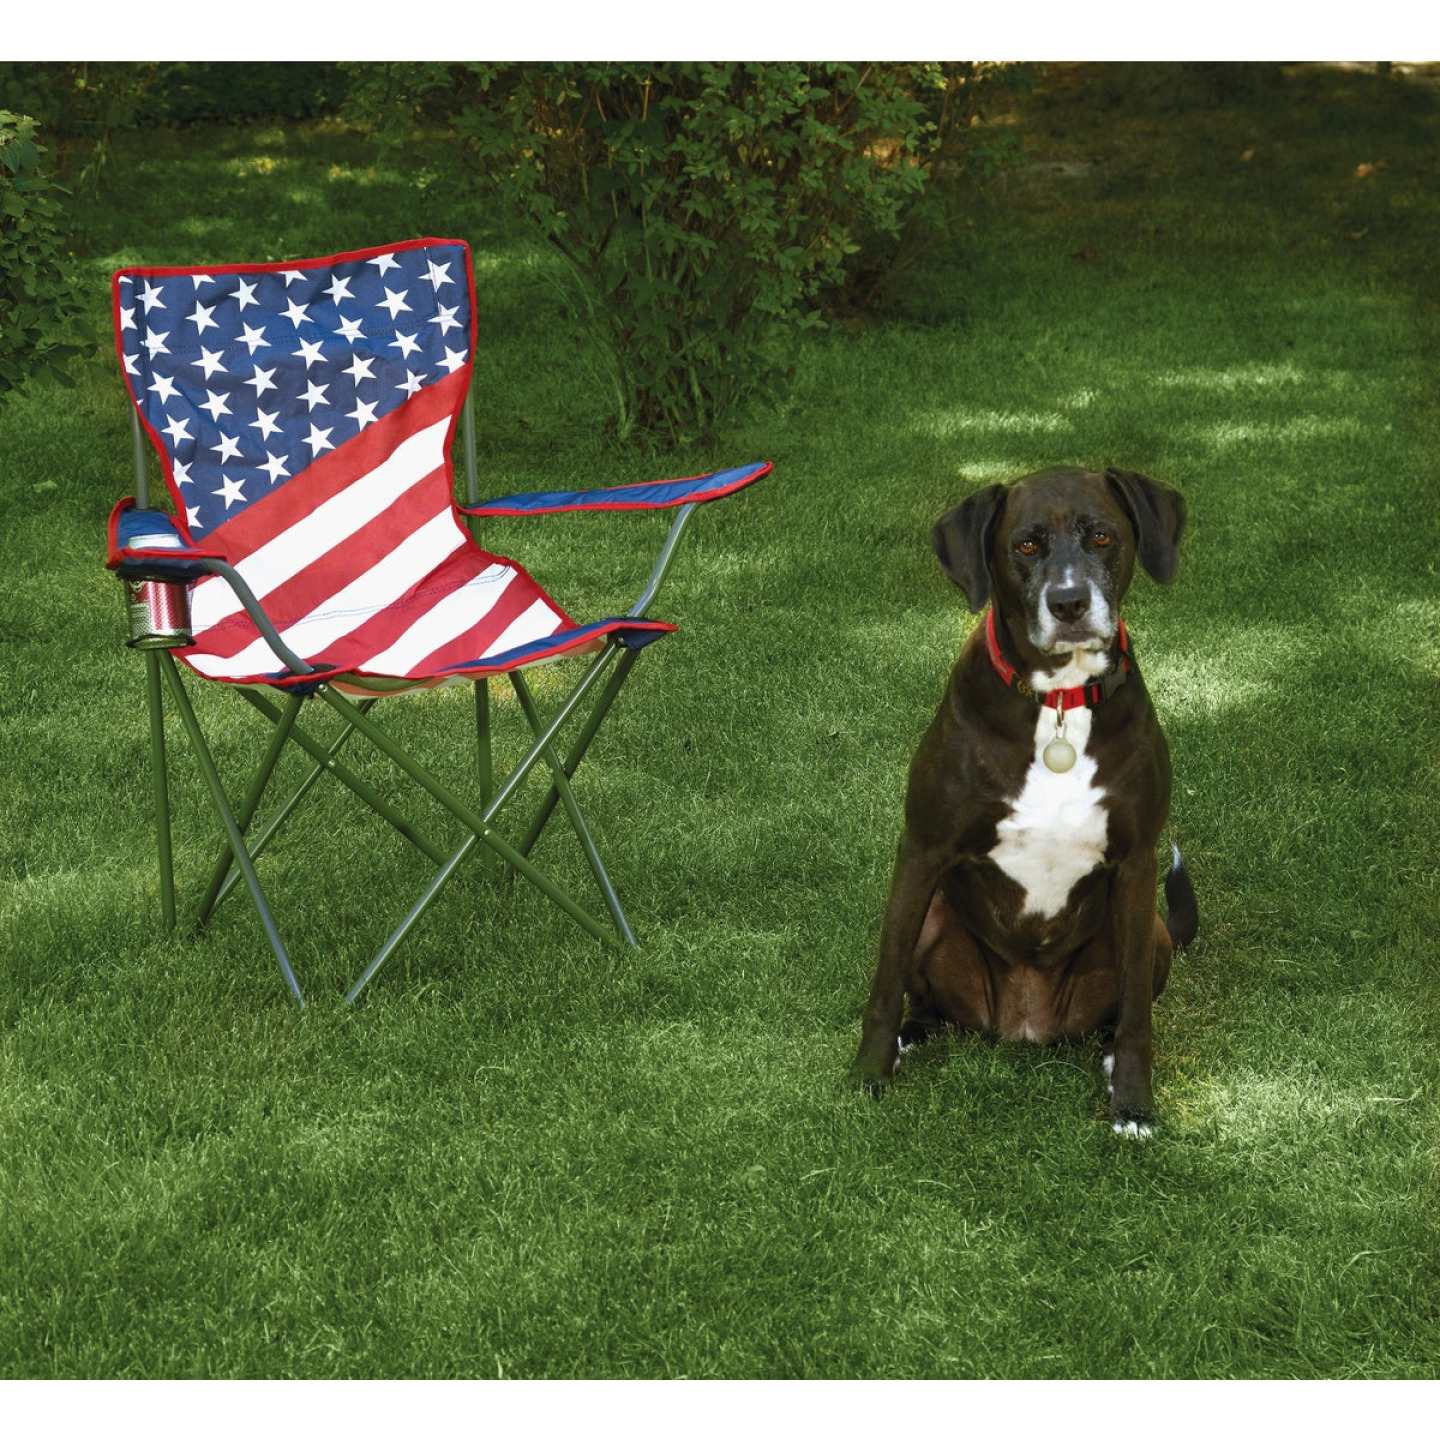 Outdoor Expressions Americana Folding Camp Chair Image 2